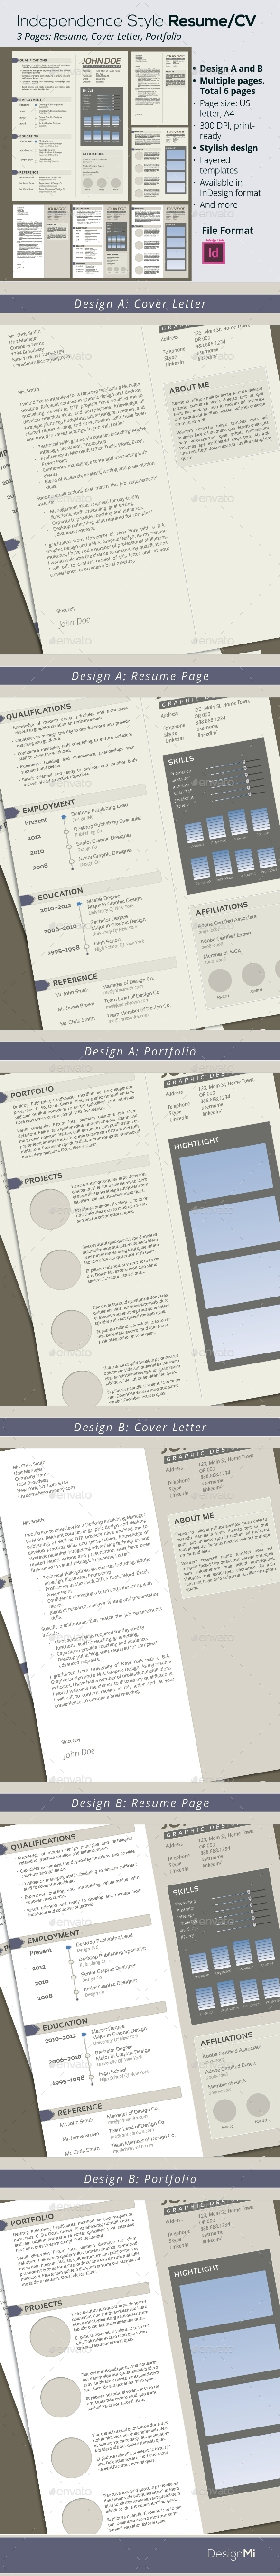 GraphicRiver Independence Style Resume CV 6 Pages 9344670